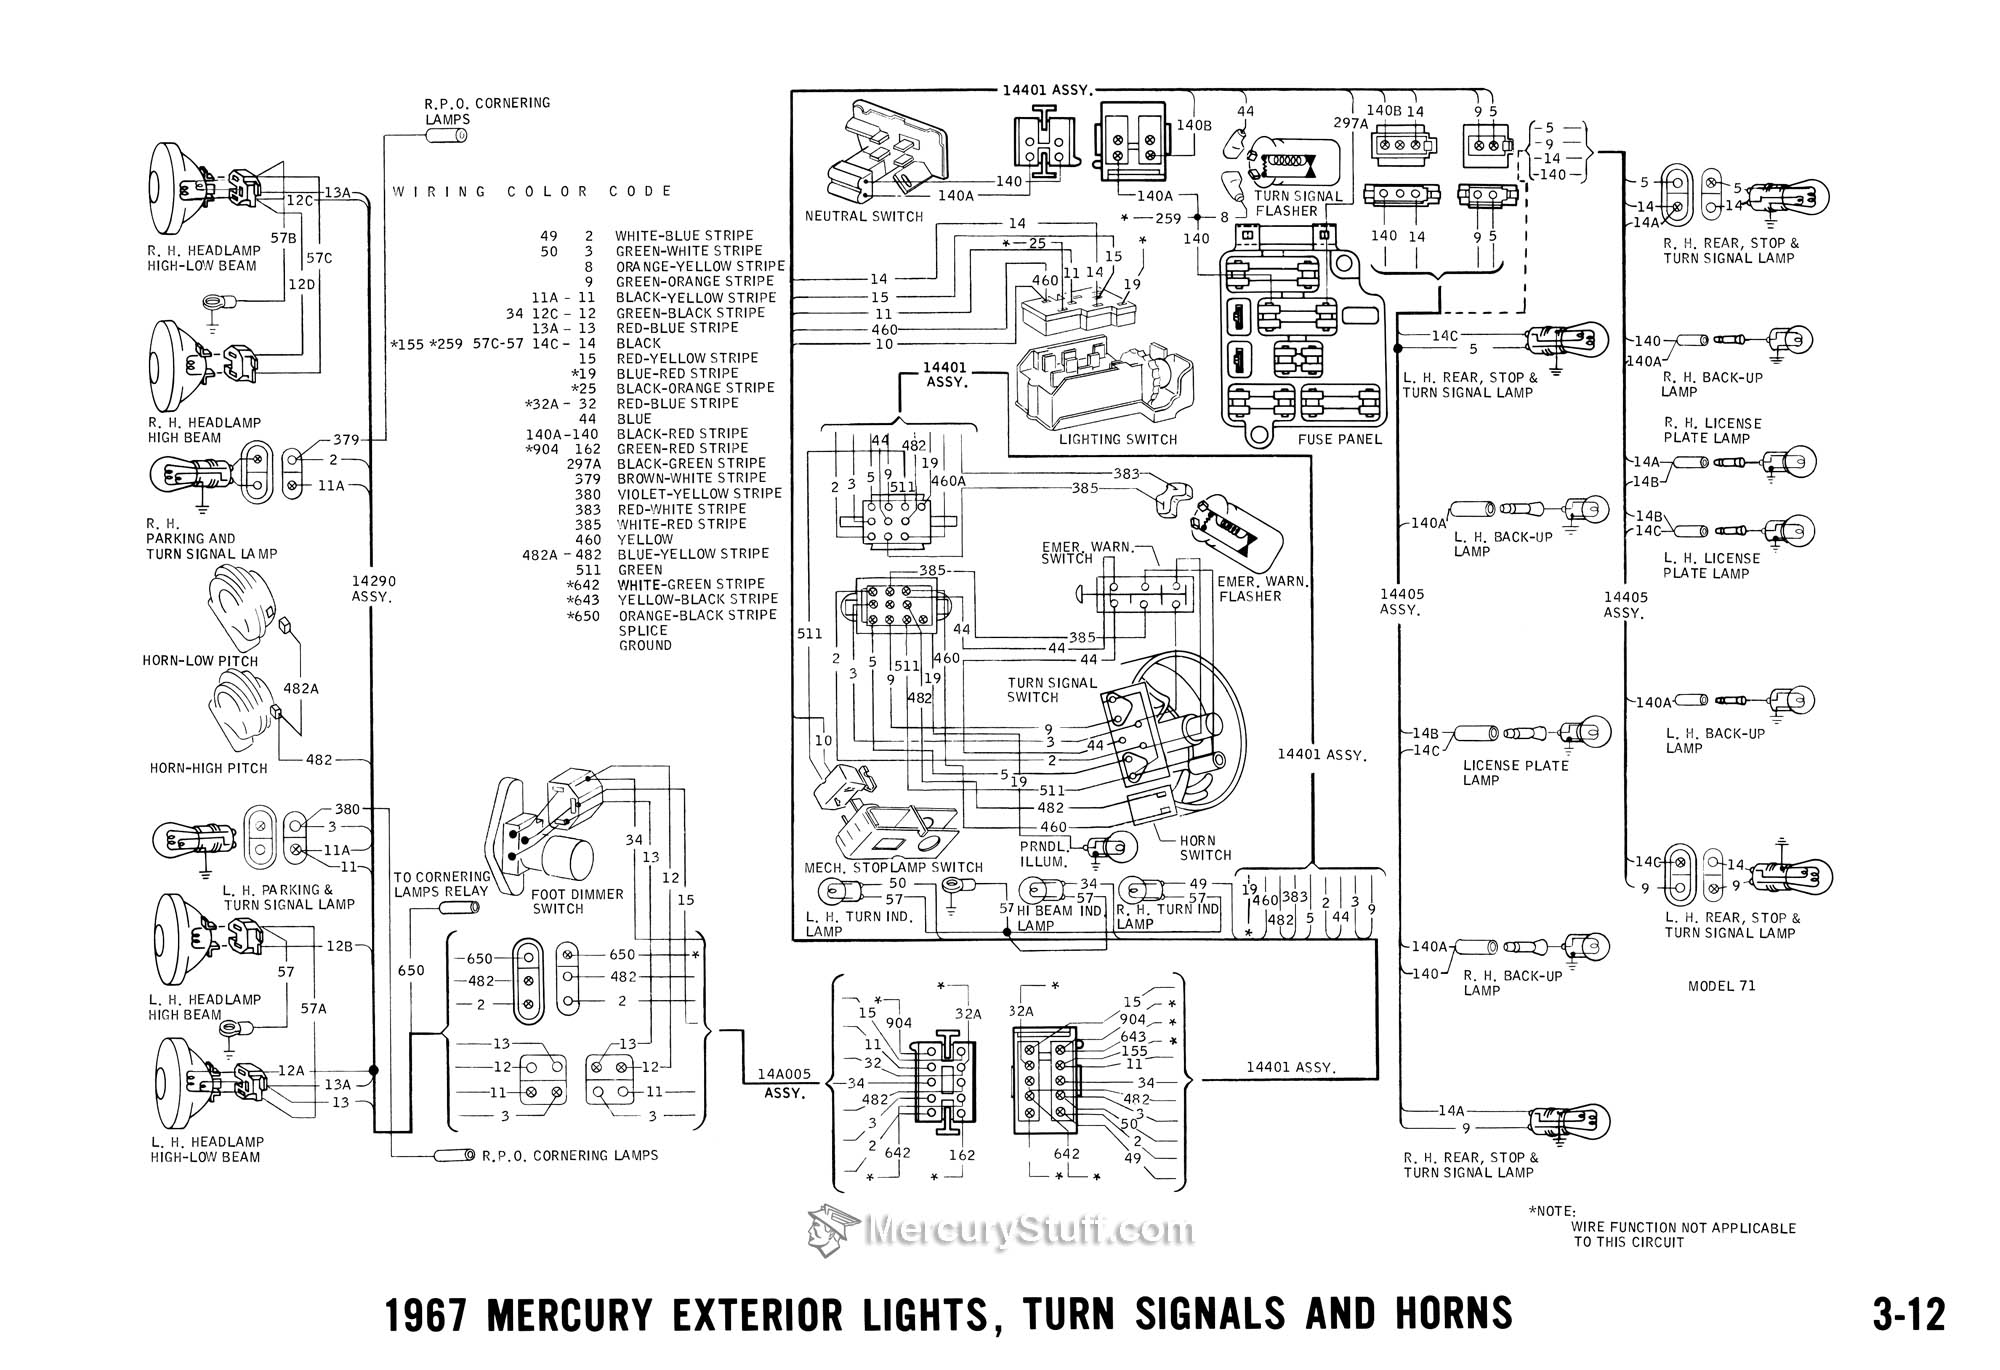 1994 cougar wiring diagram wiring diagram all data rh 2 1 feuerwehr randegg de